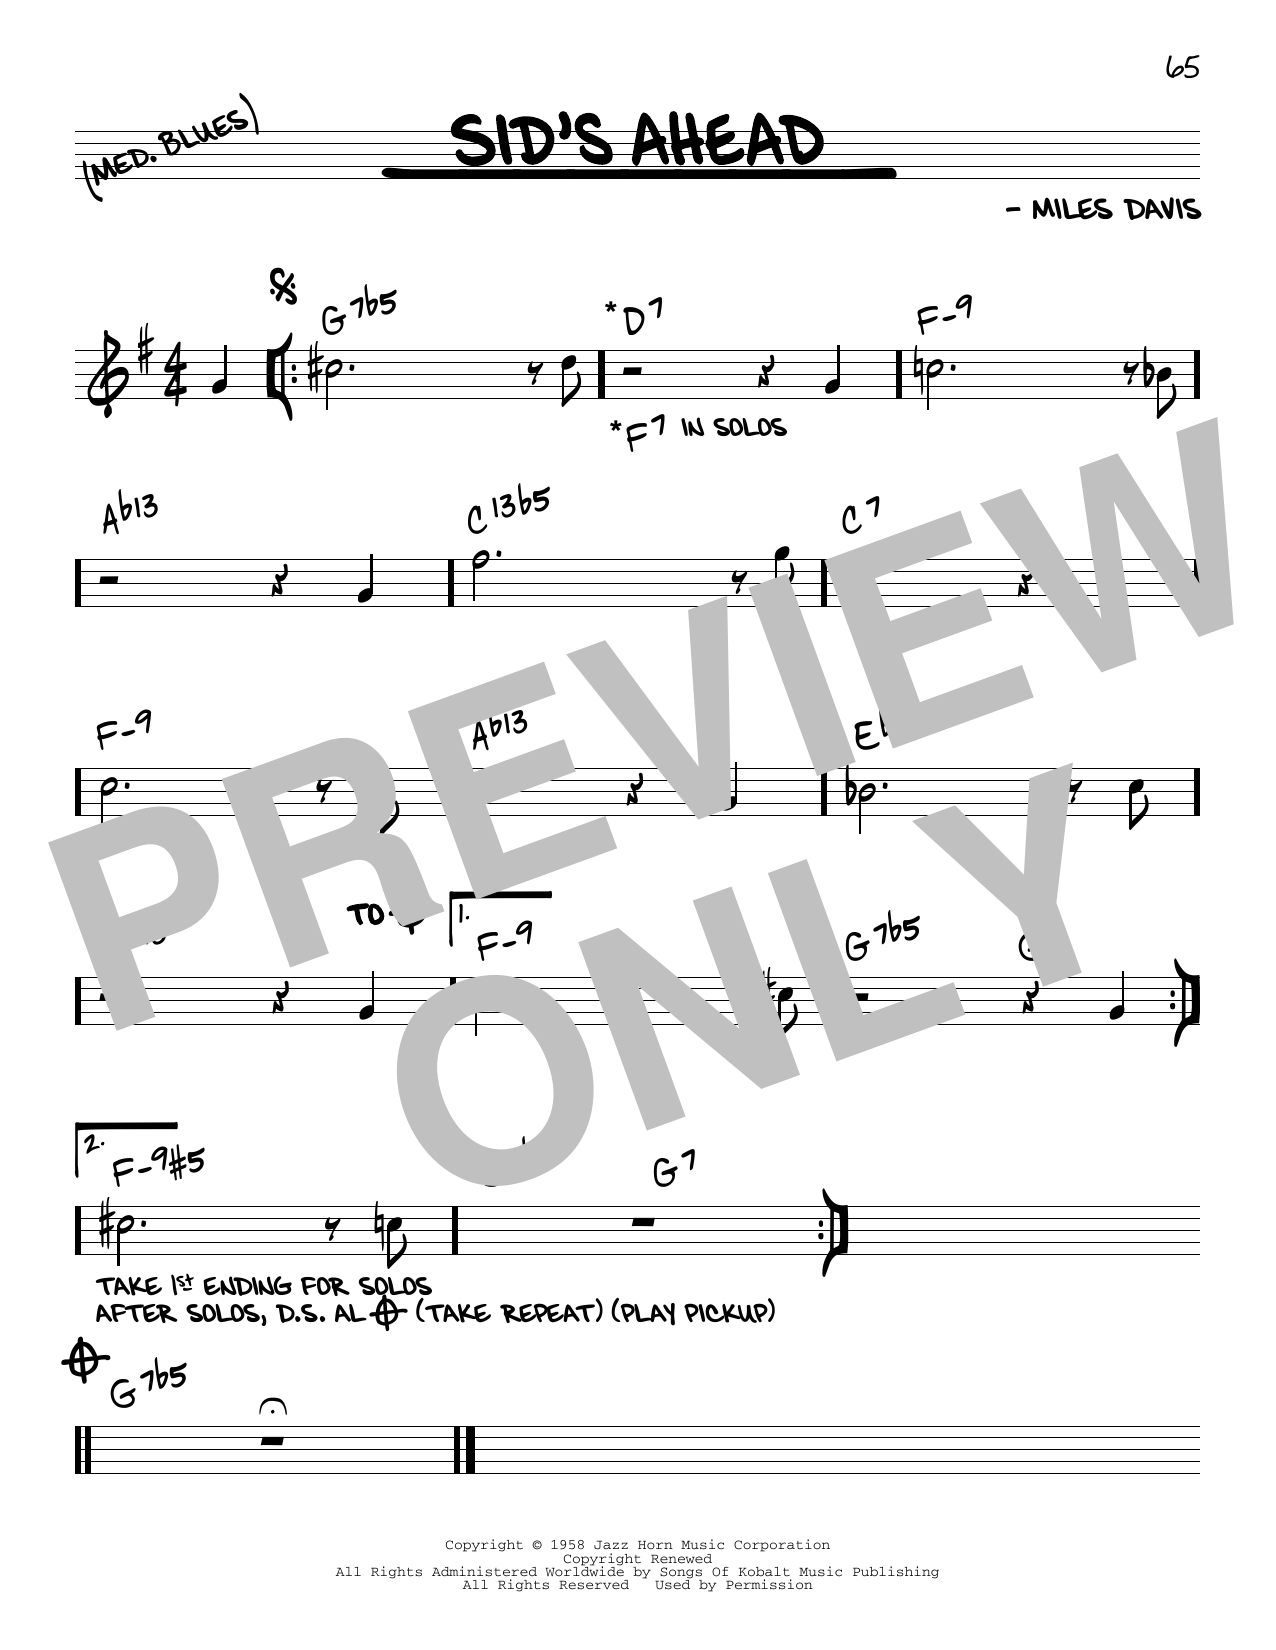 Miles Davis Sid's Ahead sheet music notes and chords. Download Printable PDF.